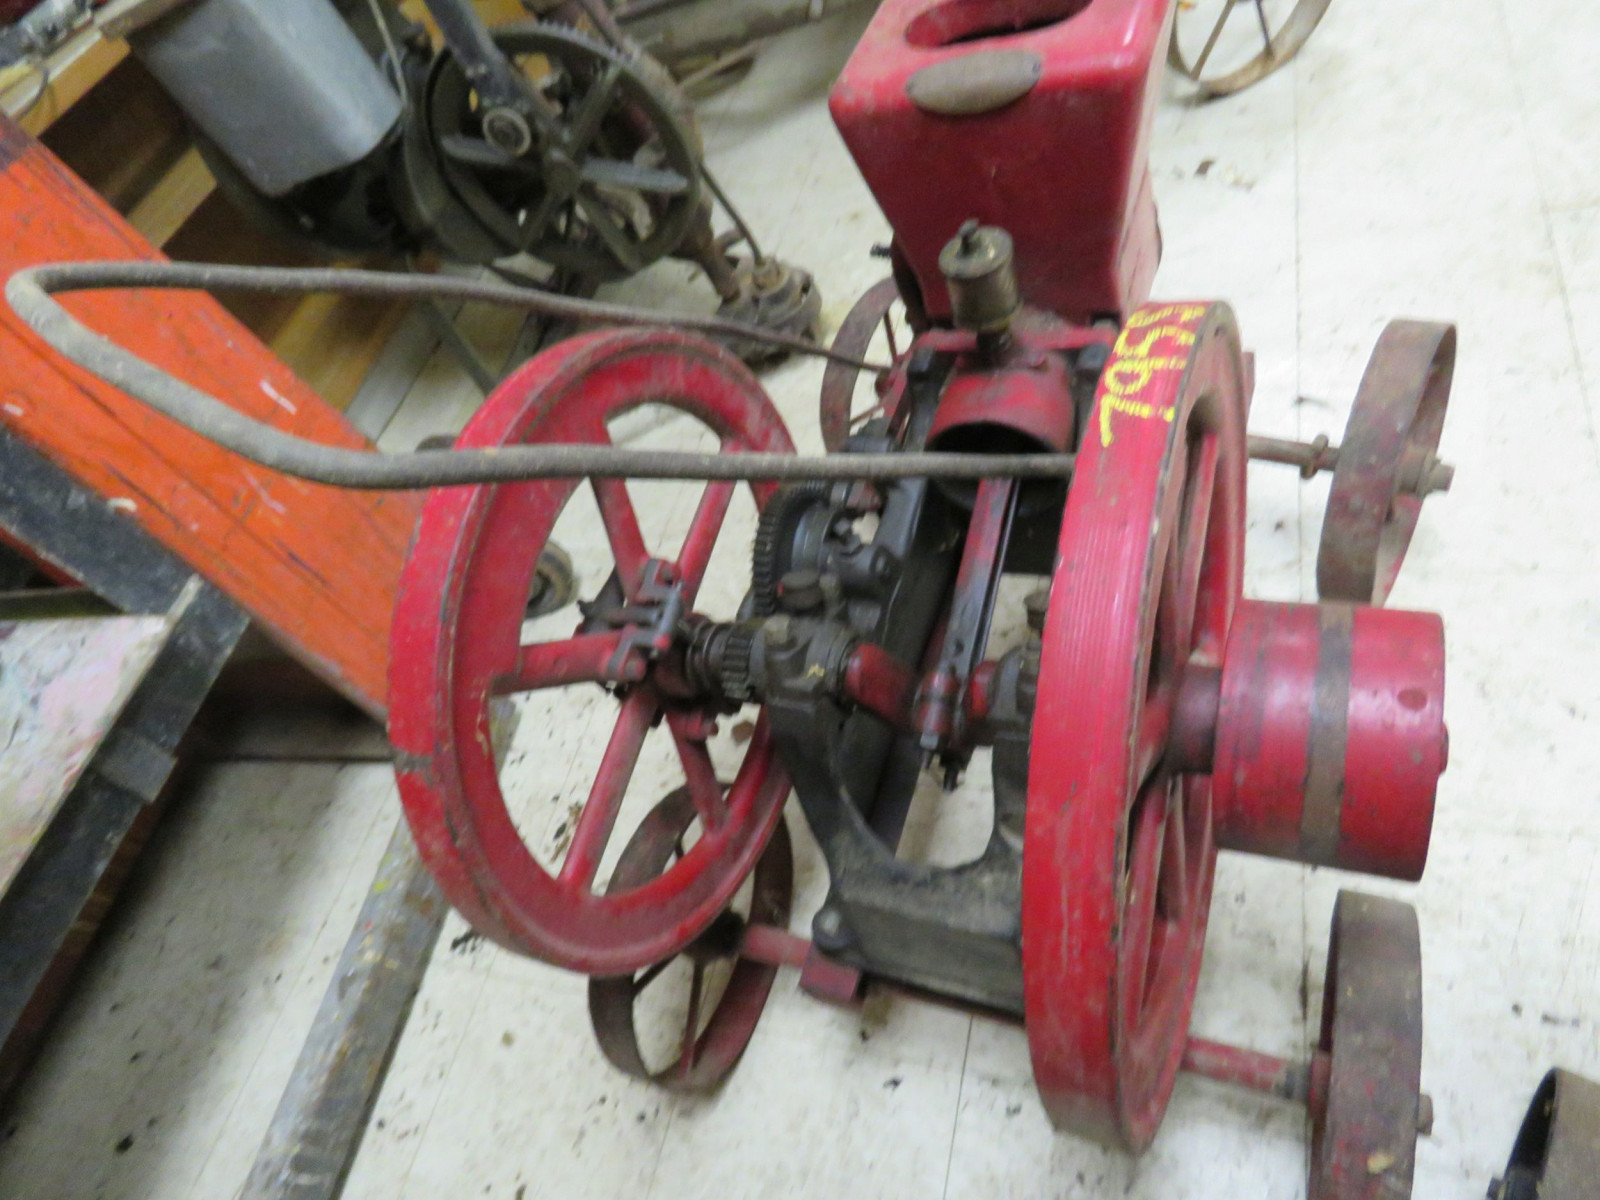 Associated 2 1/4 HP Gas Engine on Cart - Image 3